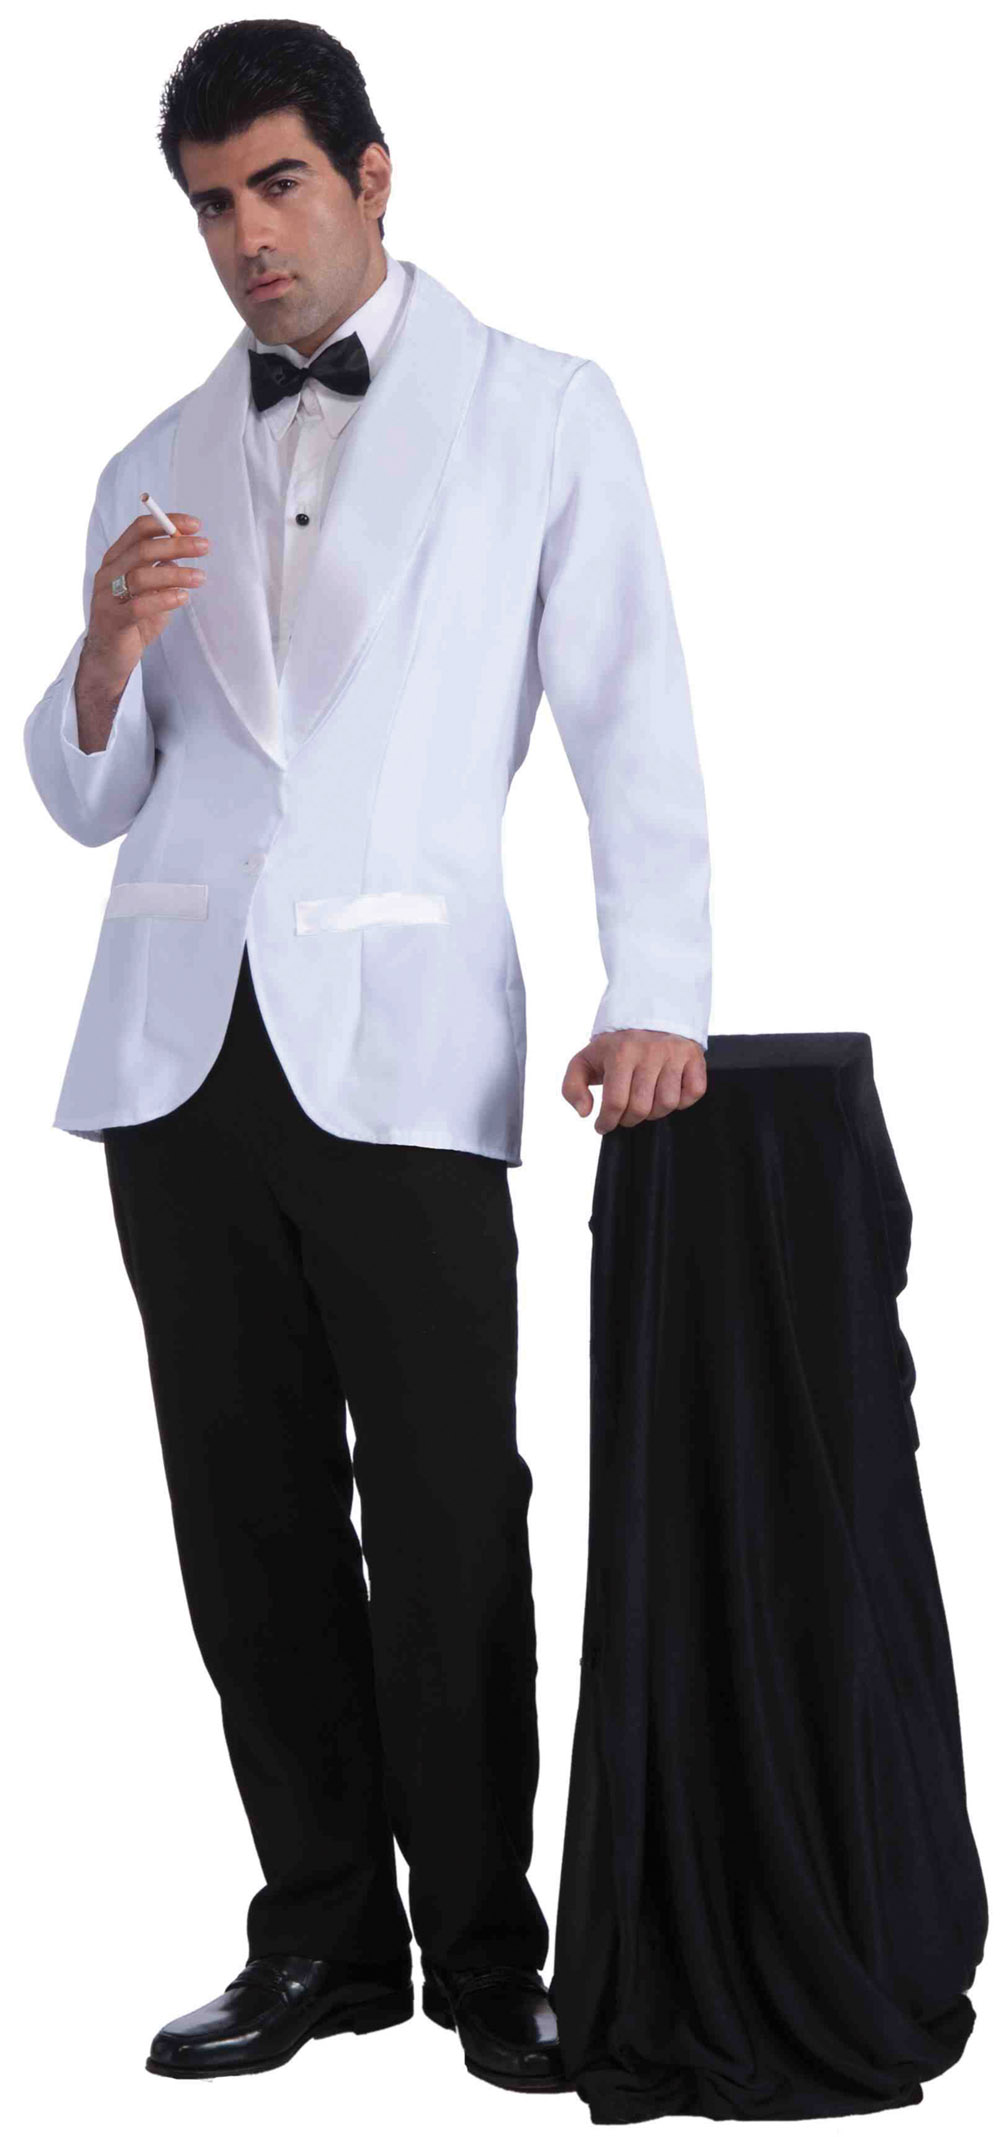 Adult Formal White Jacket Costume Thumbnail 1